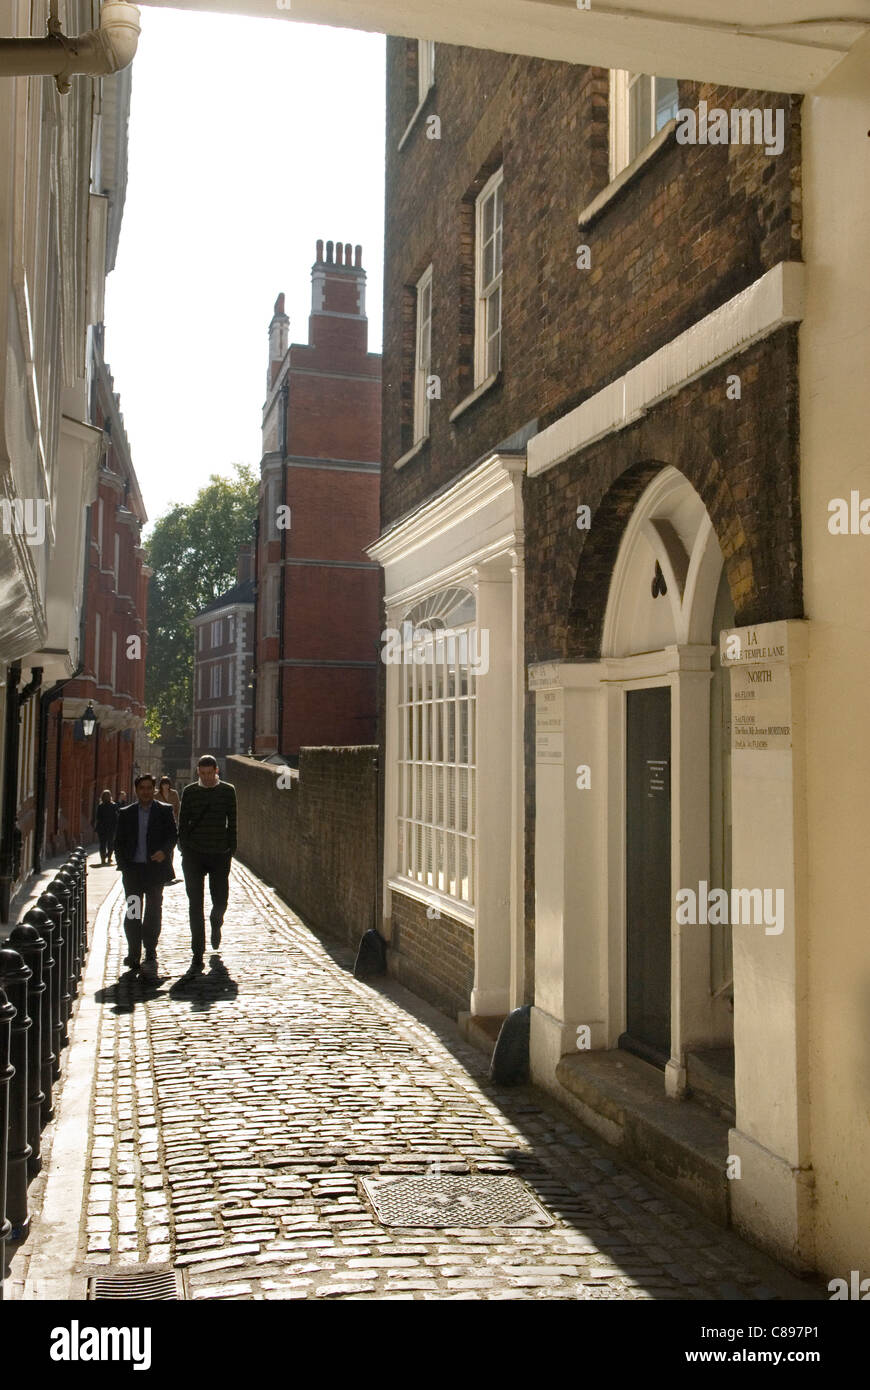 Middle Temple Lane Inns of Court. London UK. From the Gate House looking south toards the Embankment. - Stock Image